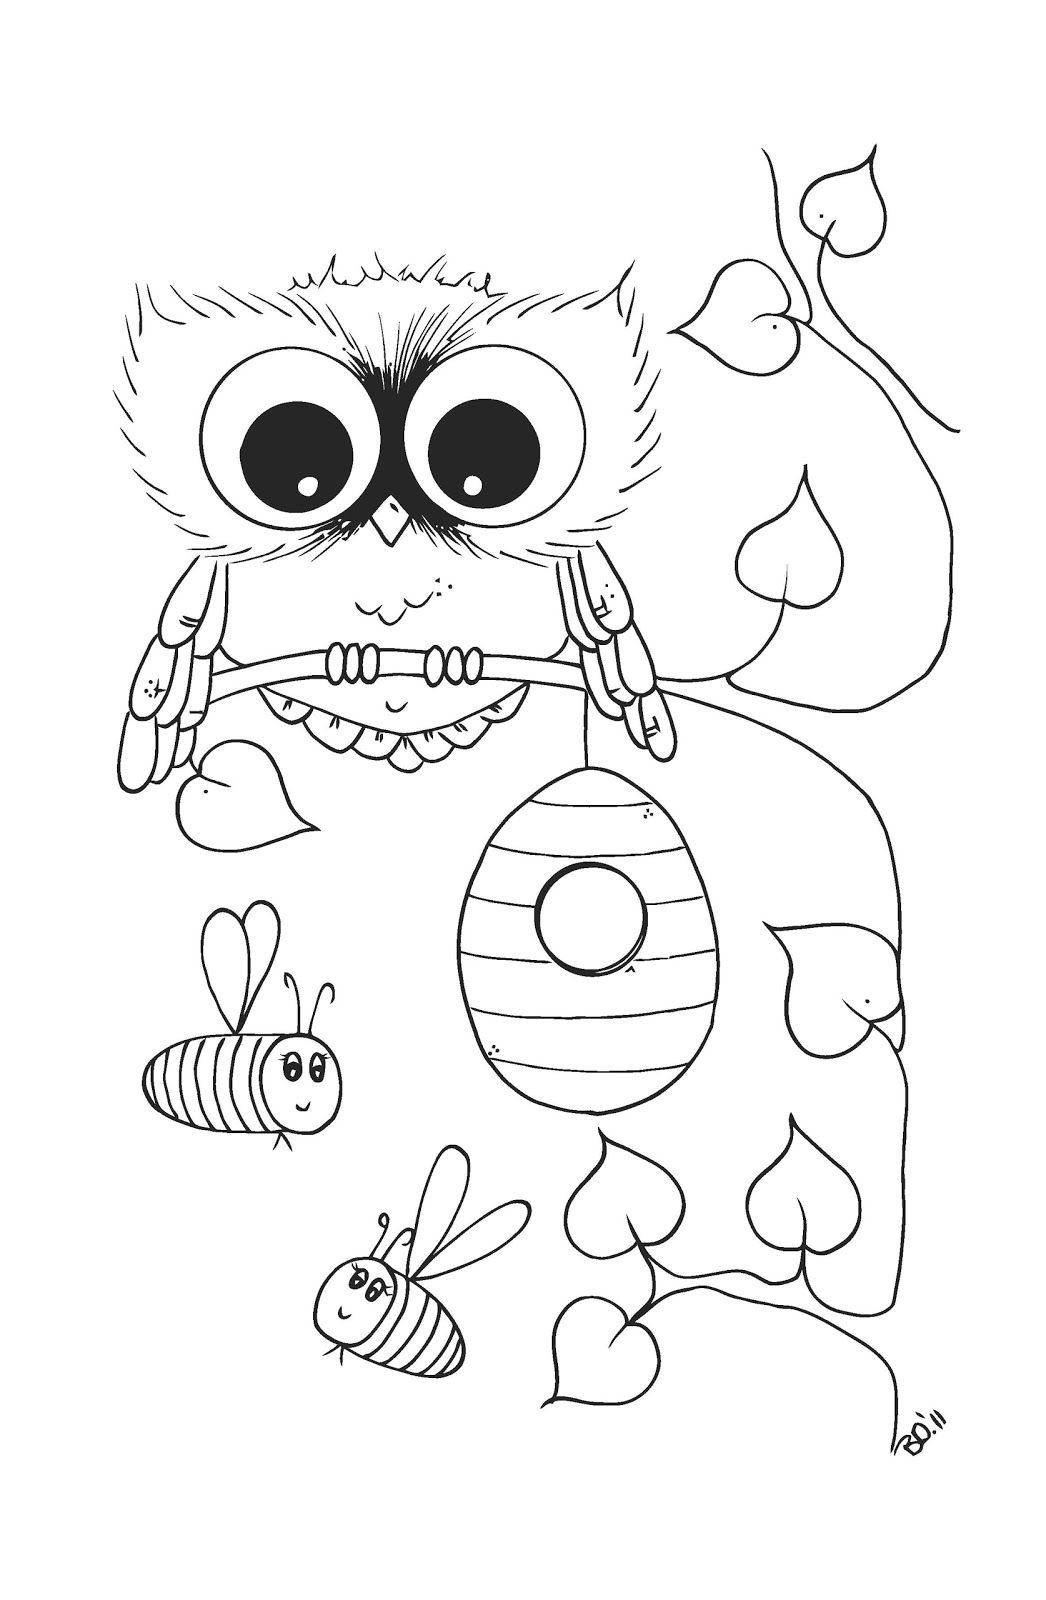 1046x1600 Free For You! One Of My New Coloring Pages There Will Be Soon New